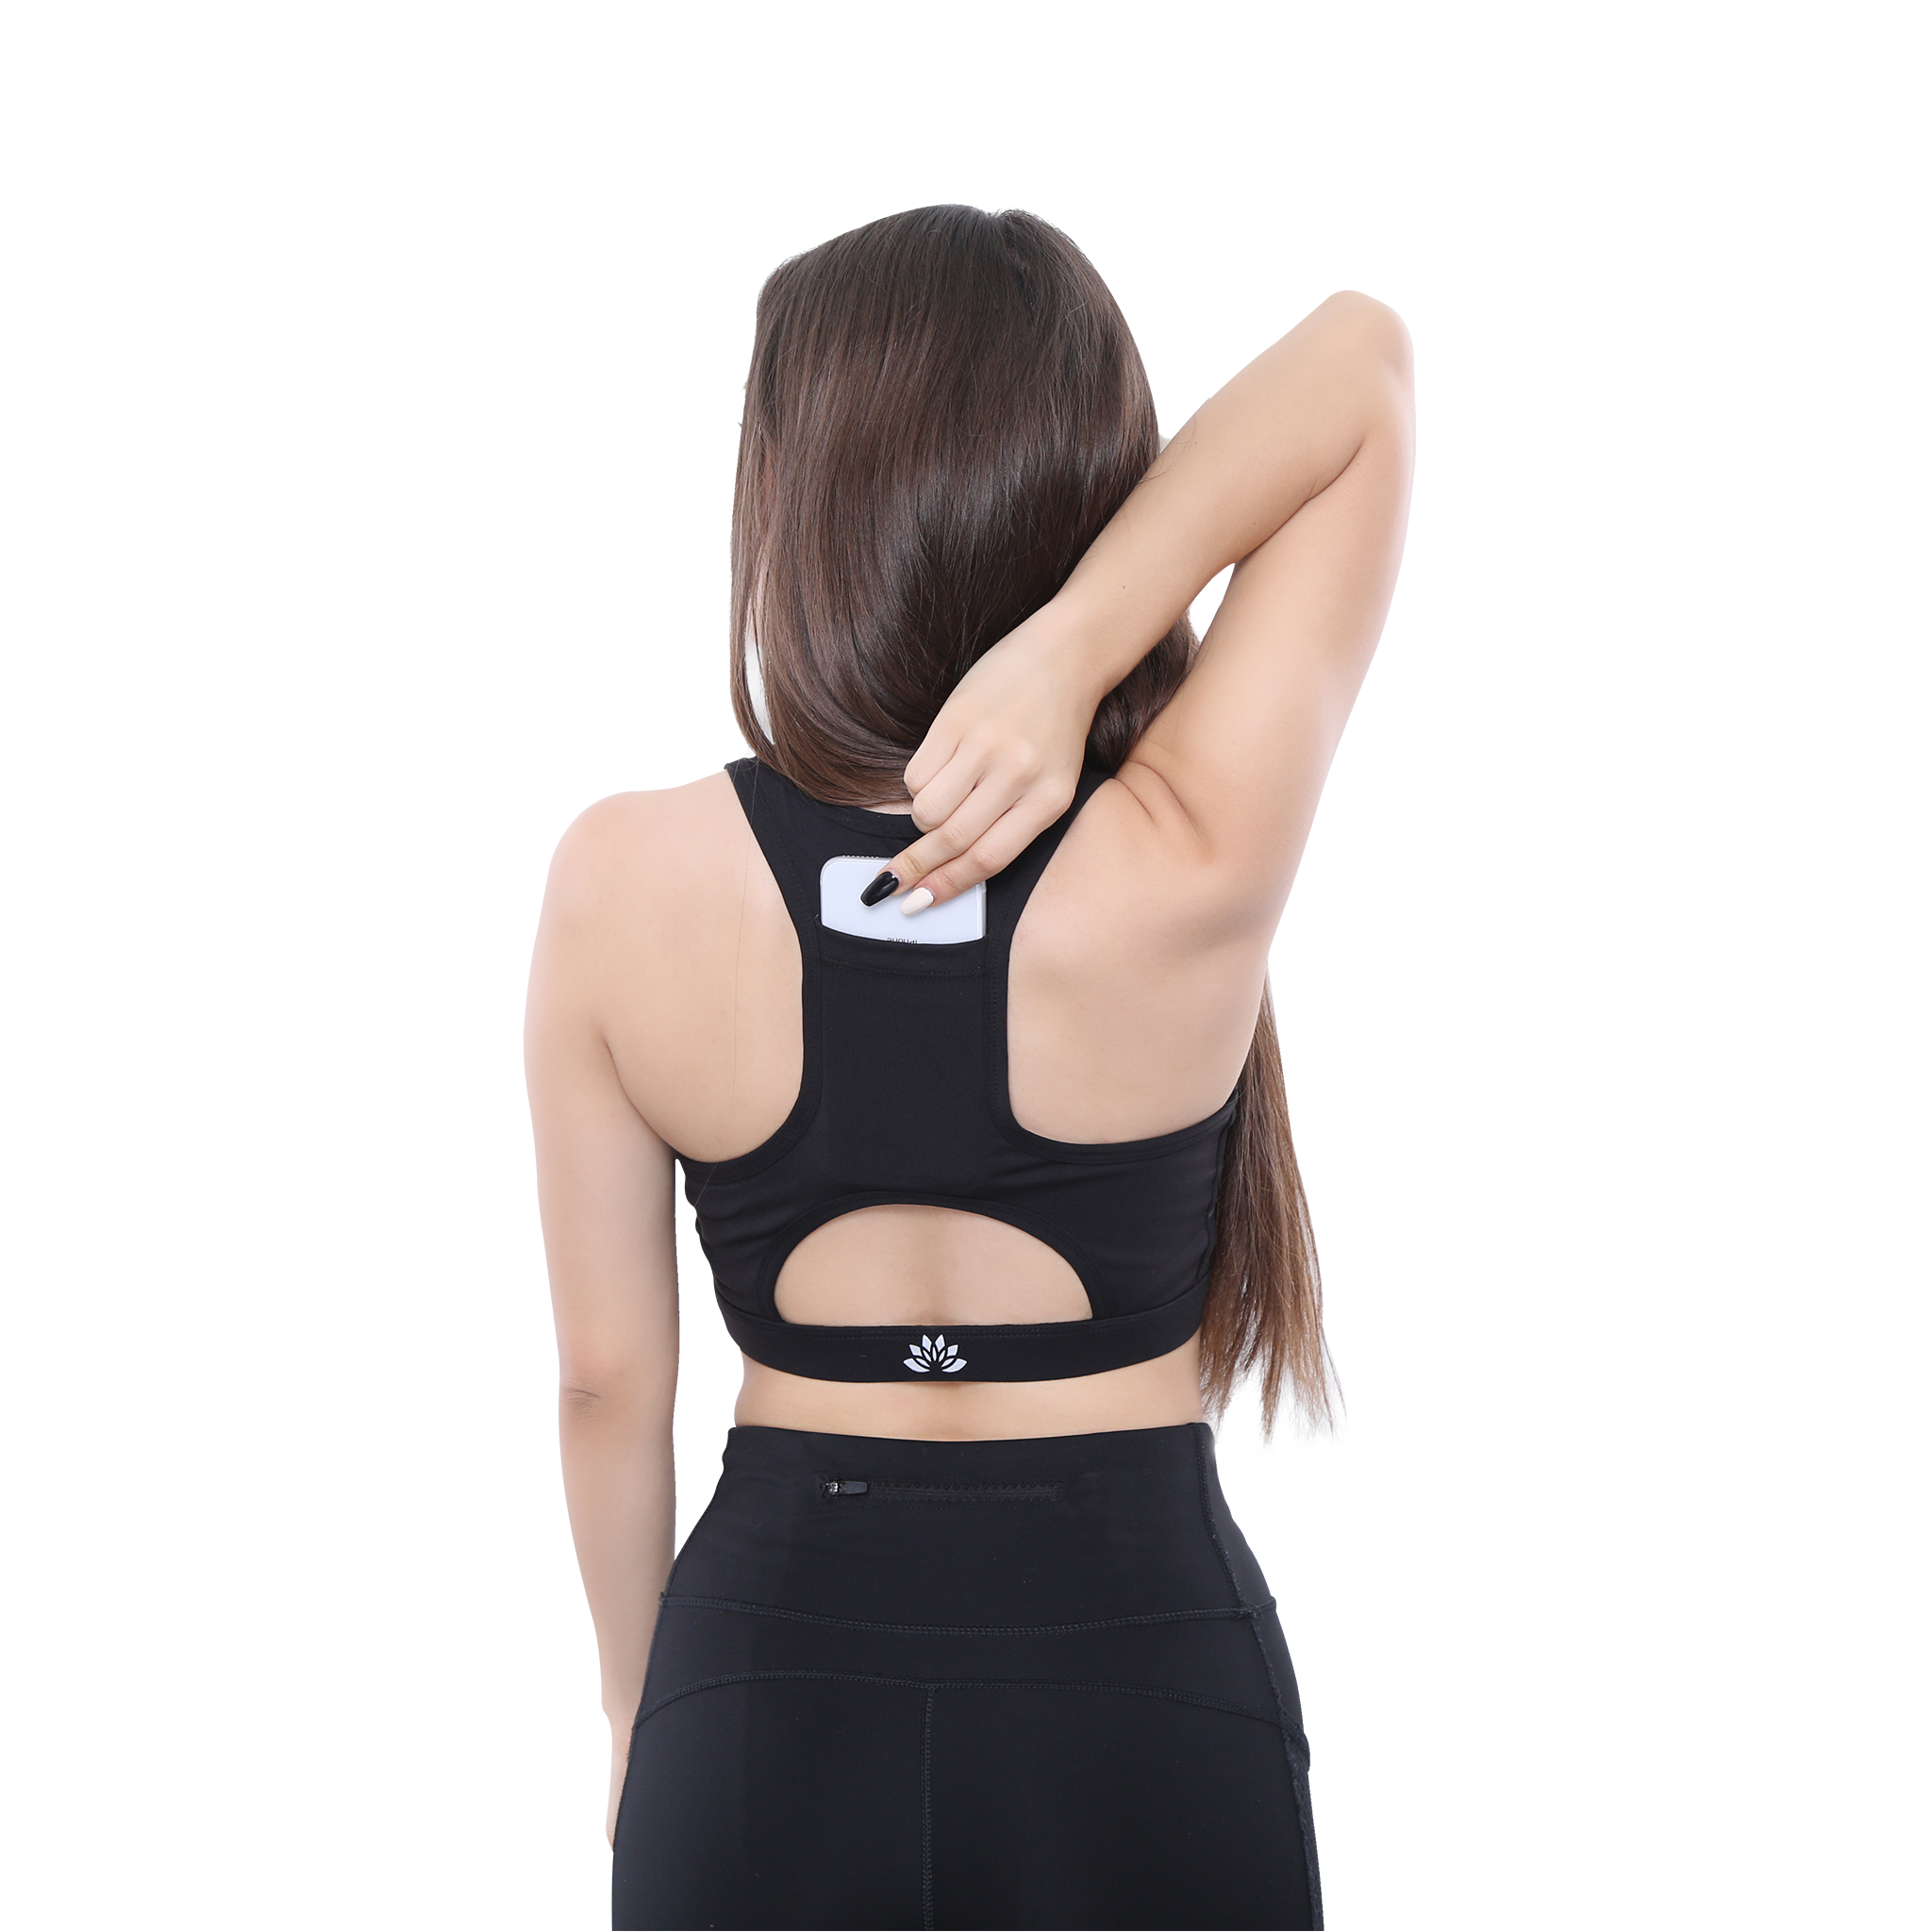 Back Side View PSYKIE Black Pocket Sports Bra long line sports bra, with built-in phone holder at the back.